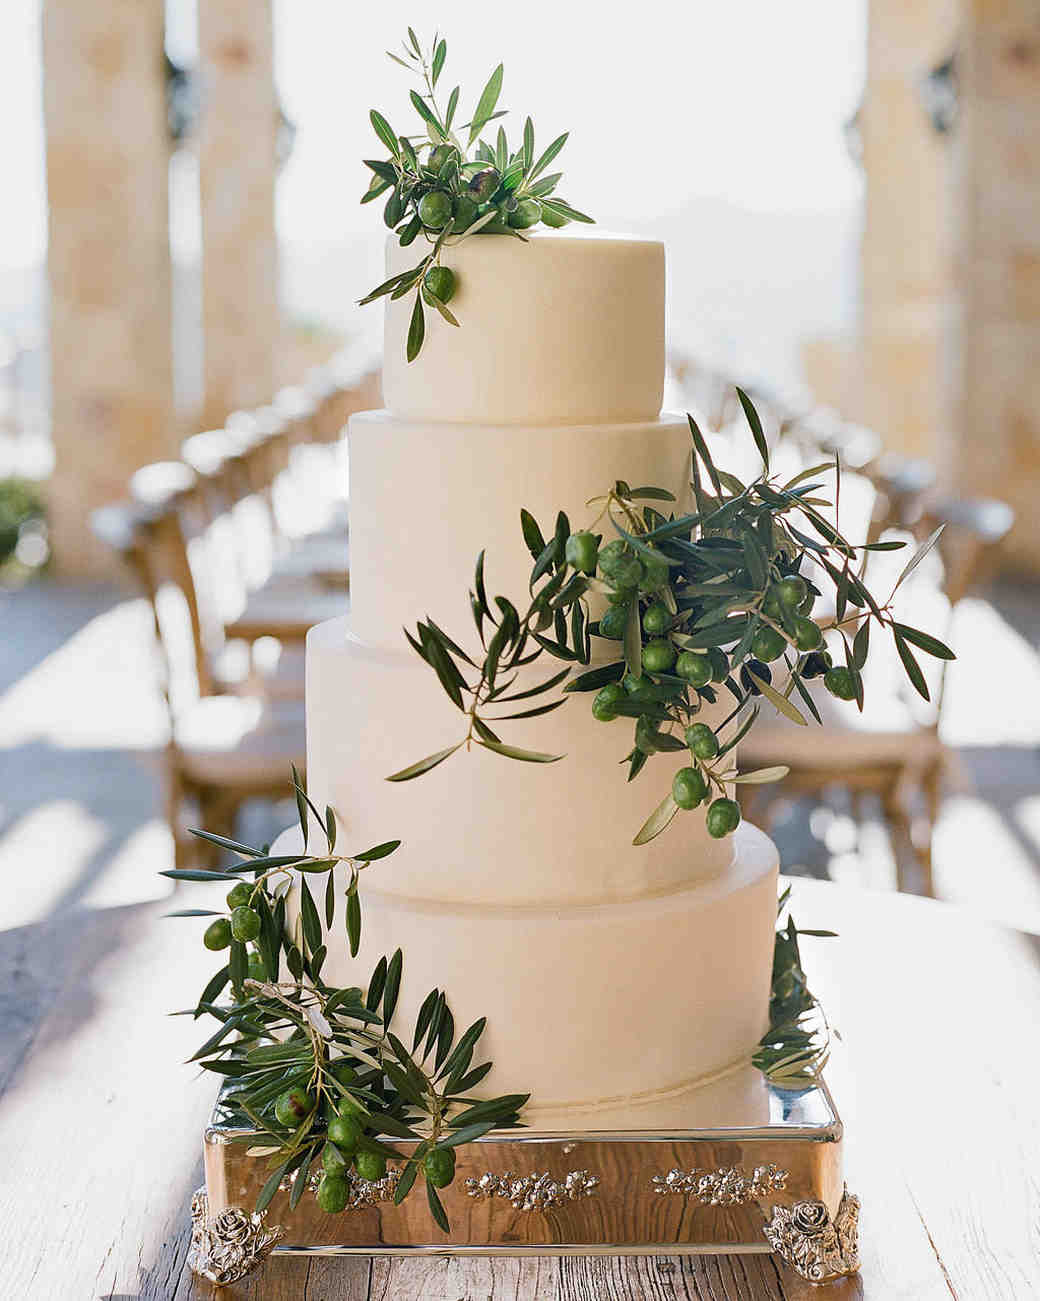 martha stewart wedding cakes pictures a malibu wedding with a reception location 17208